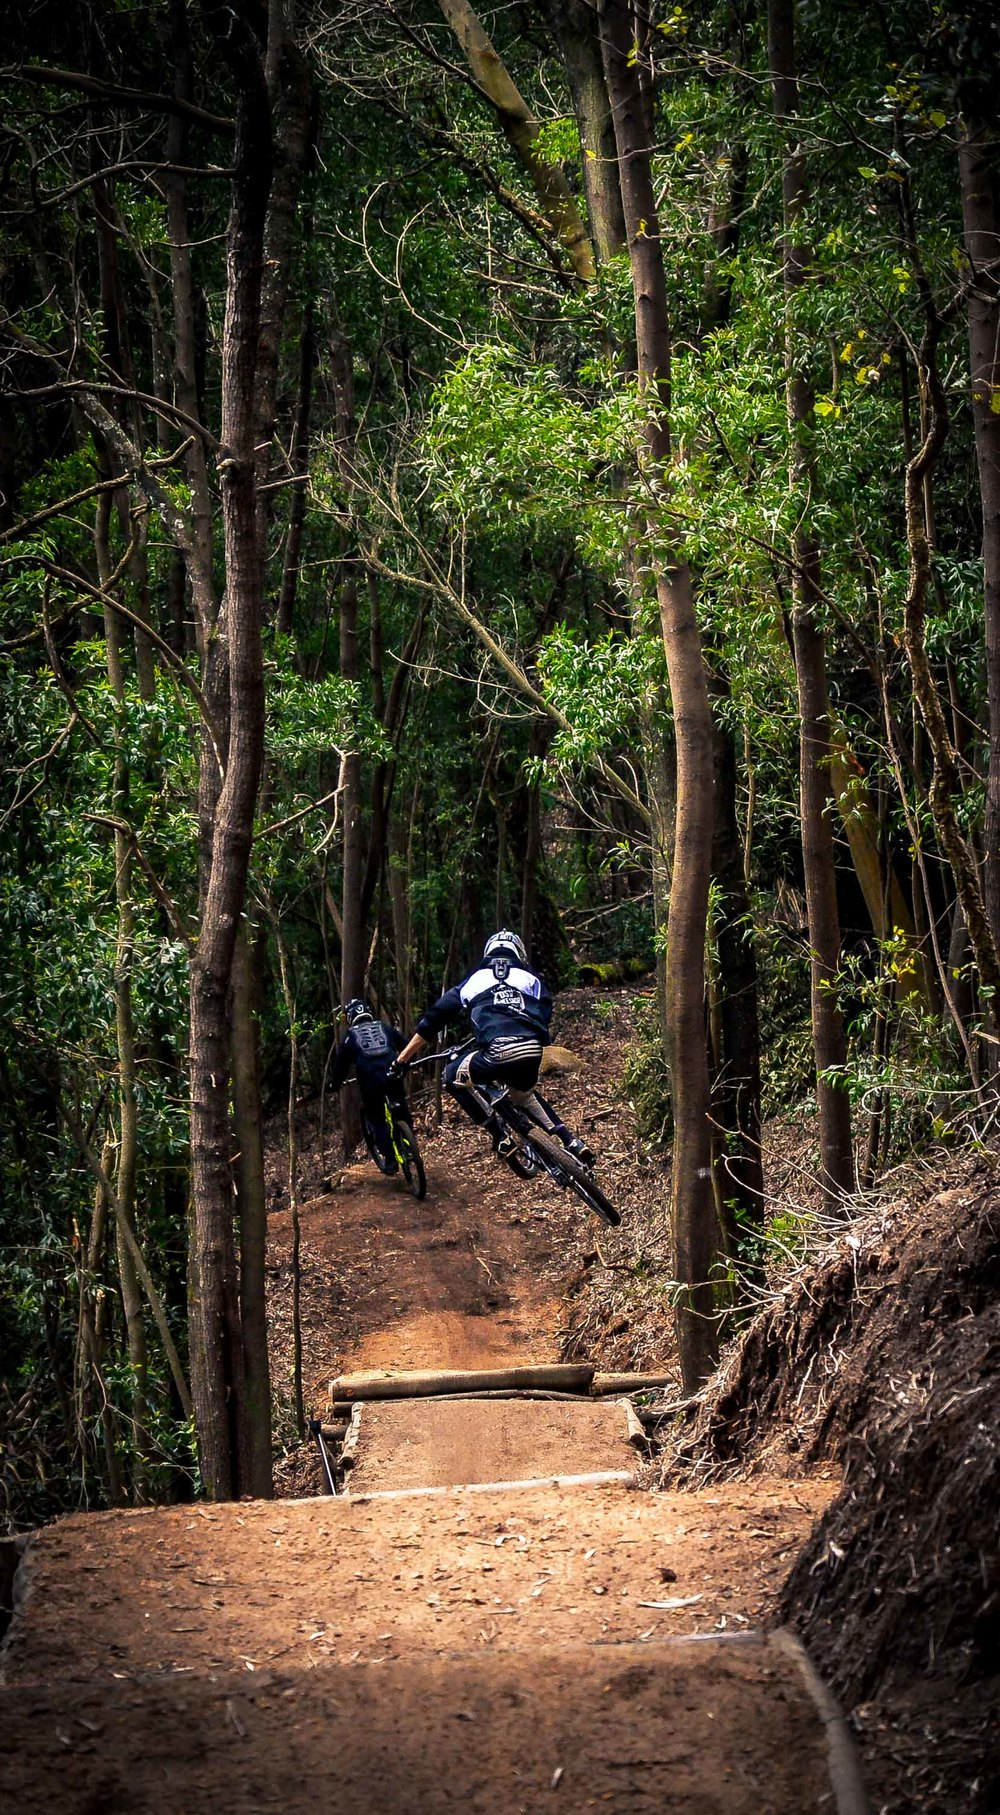 1st place, photo by Rodrigo Silva, rider Diogo Silva